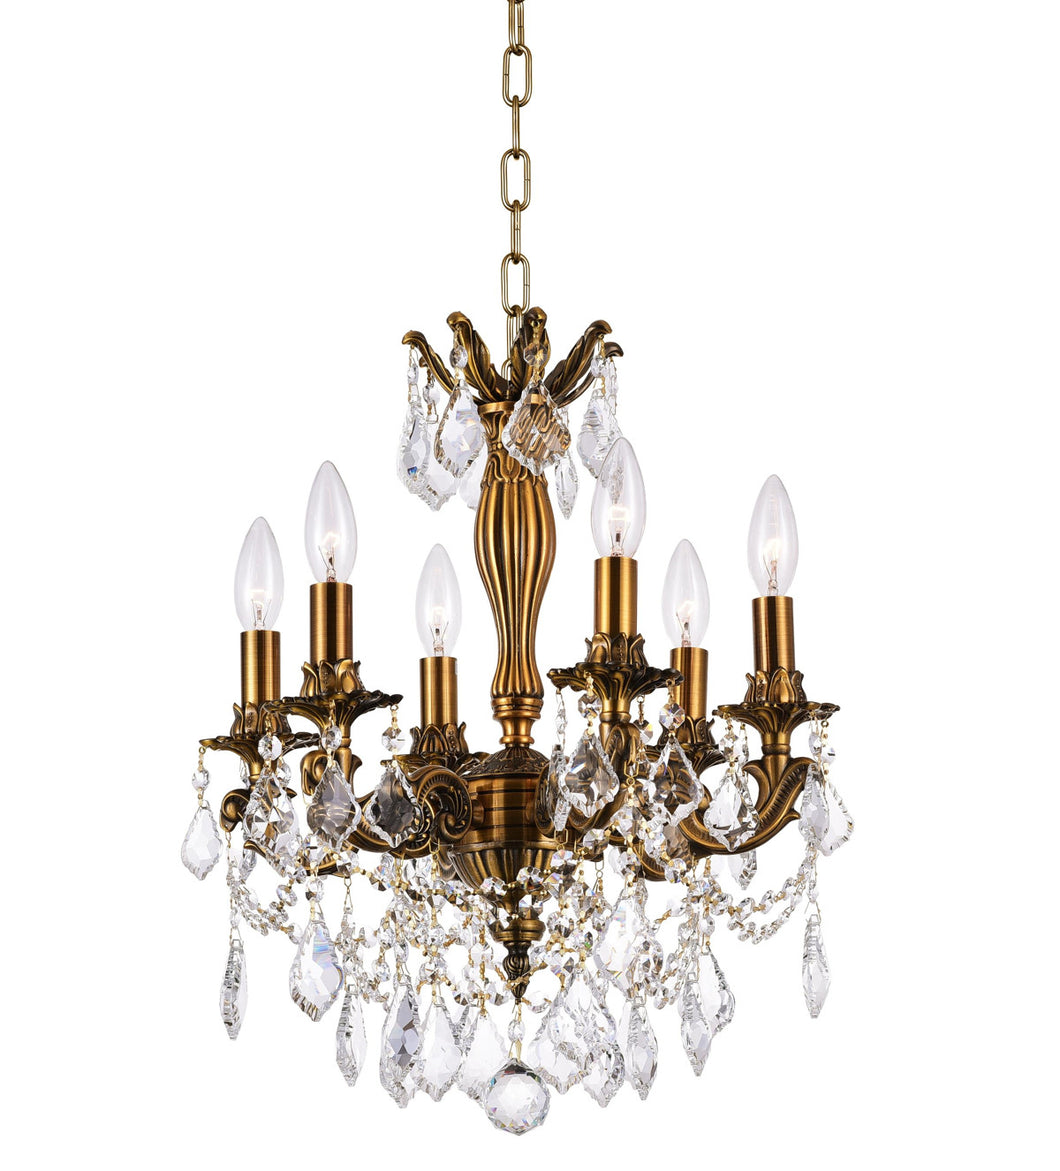 6 Light Up Chandelier with French Gold finish